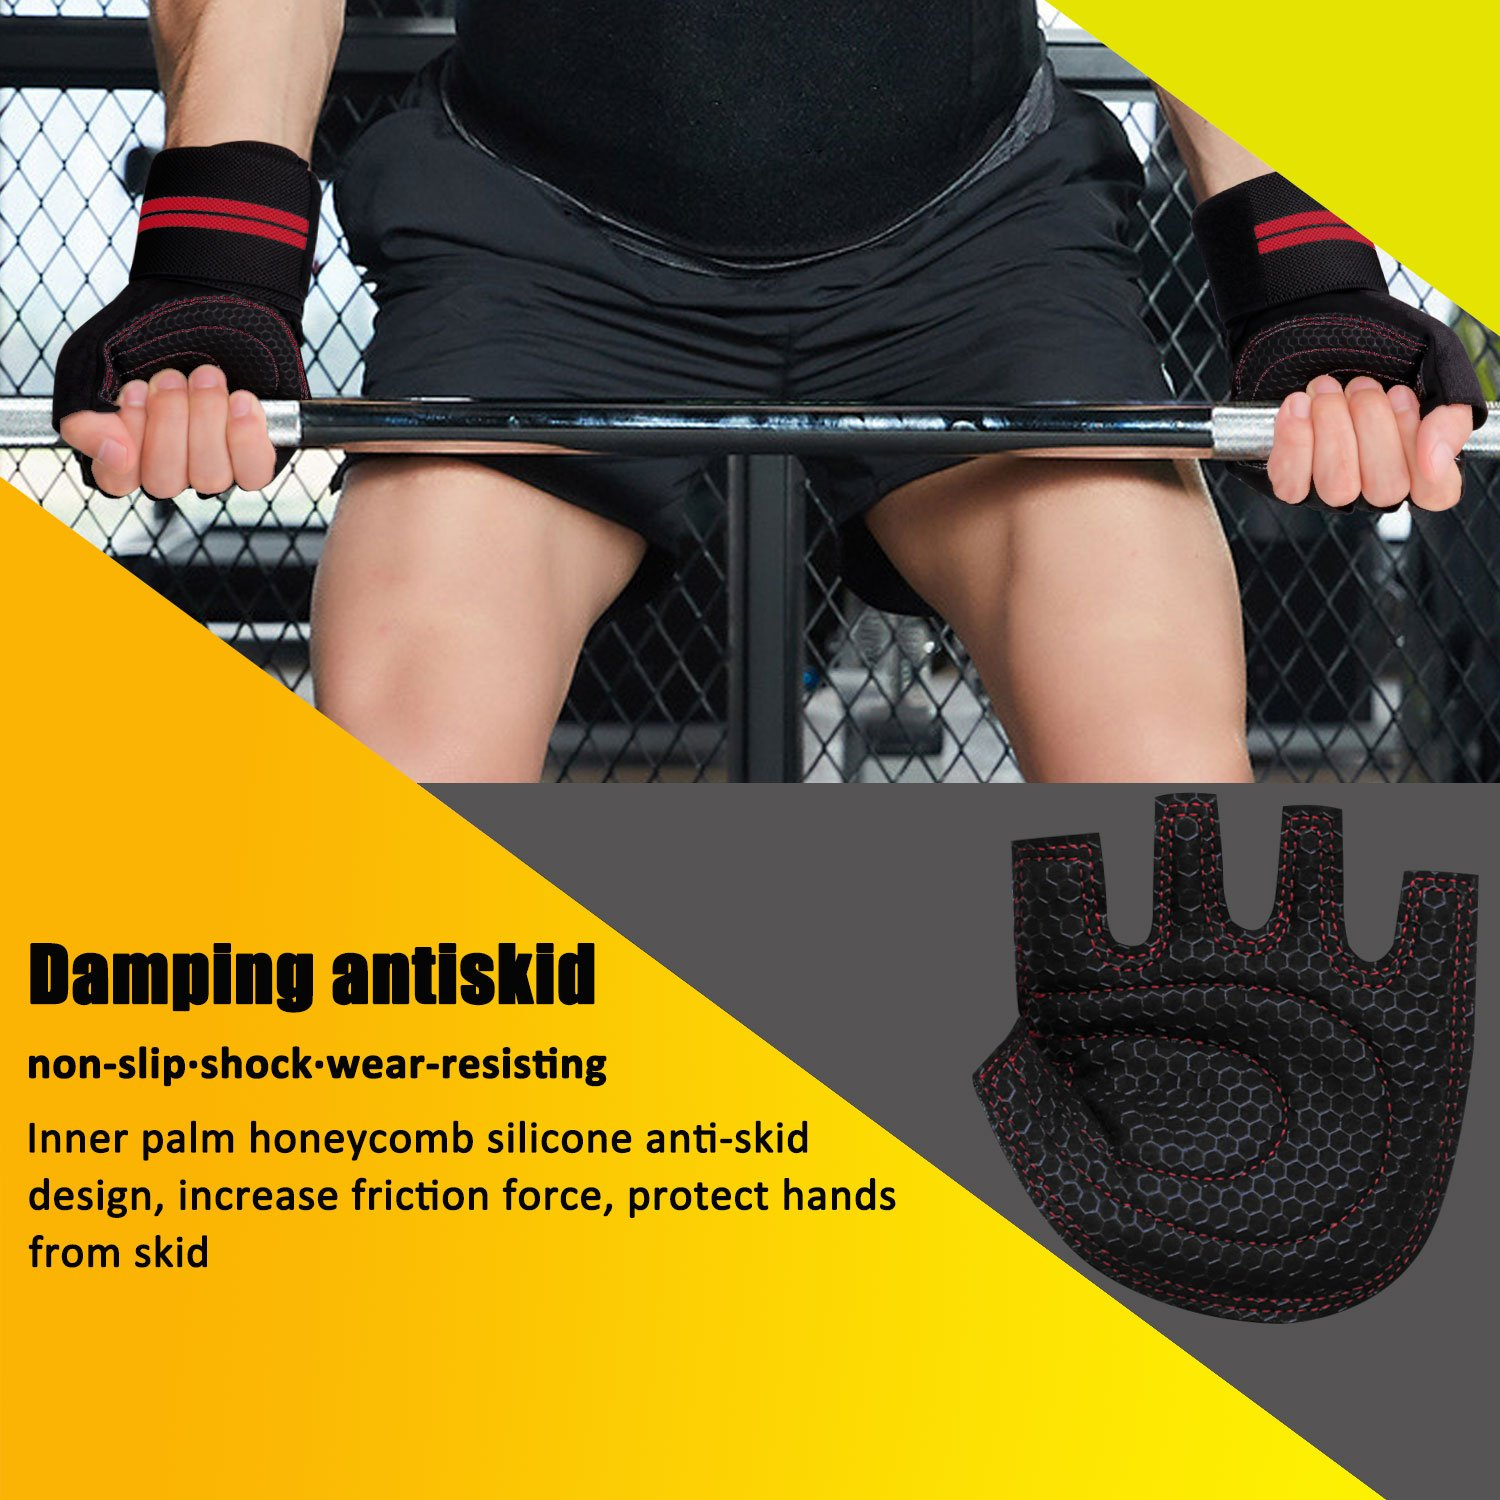 Innens Workout Gloves for Men and Women Perfect for Workout Exercise Training Fitness Weight Lifting Gloves Gym Gloves with Built-in Wrist Wraps Support and Anti-Slip Palm